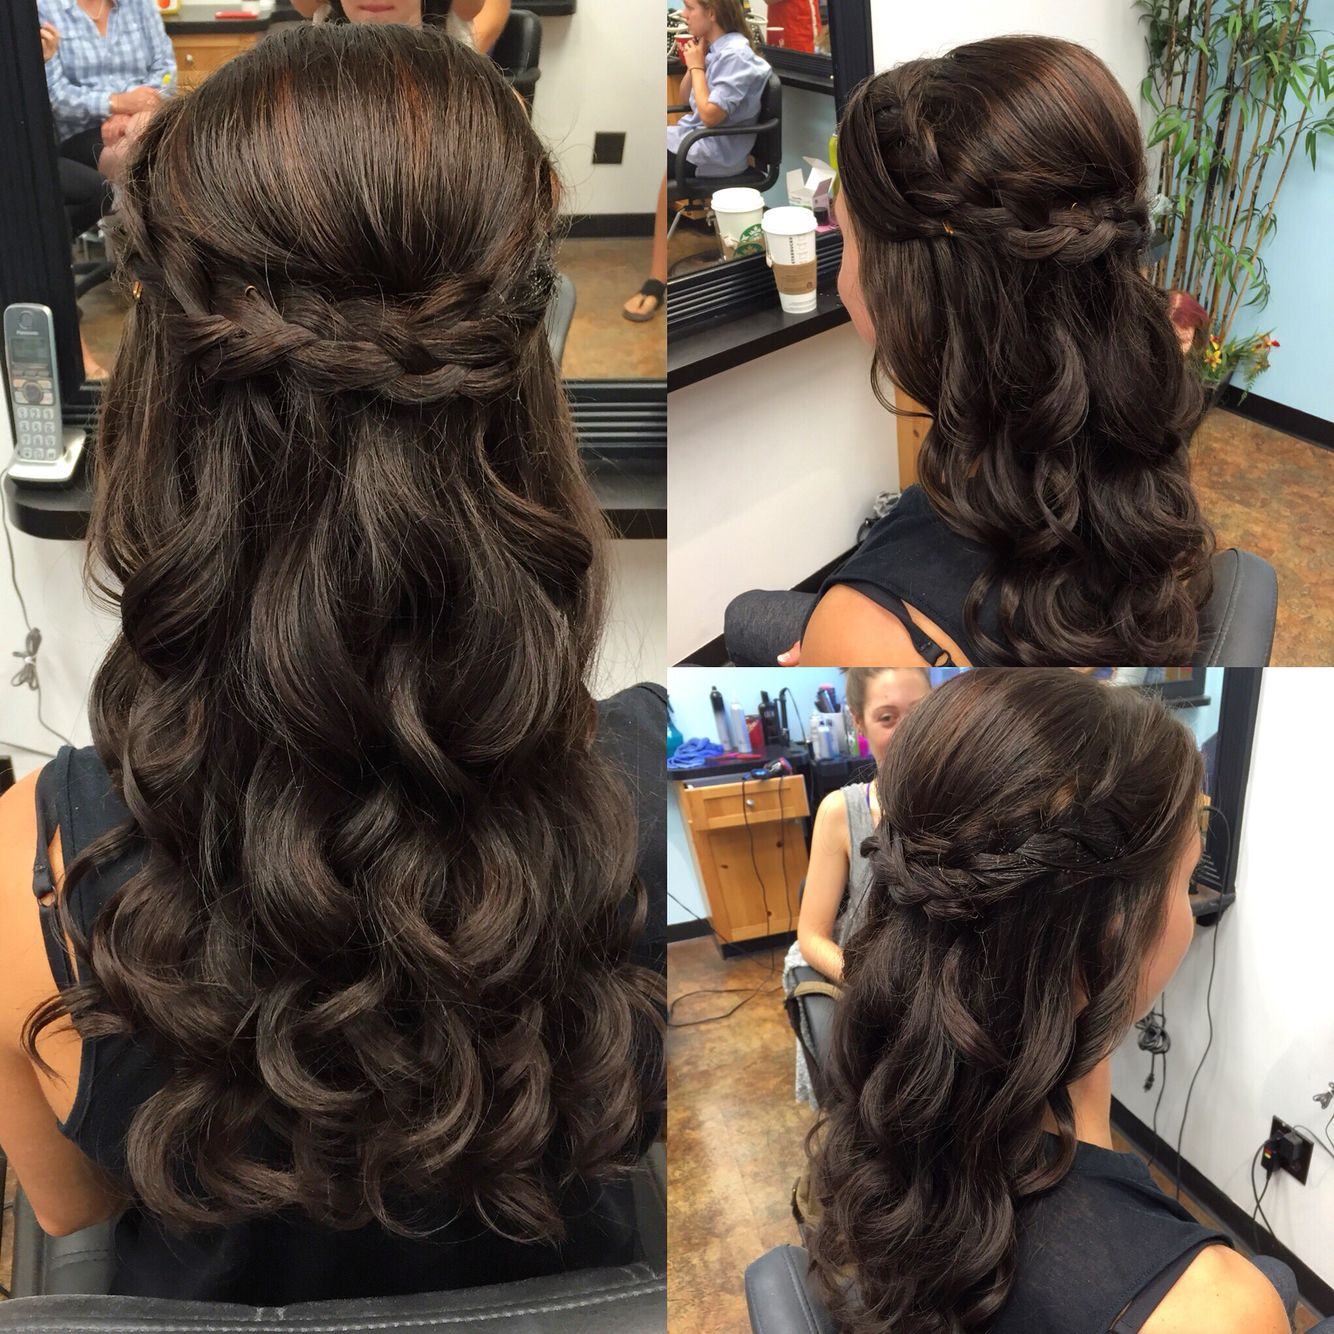 sarah nightingale | curly hairstyles, weddings and hair style